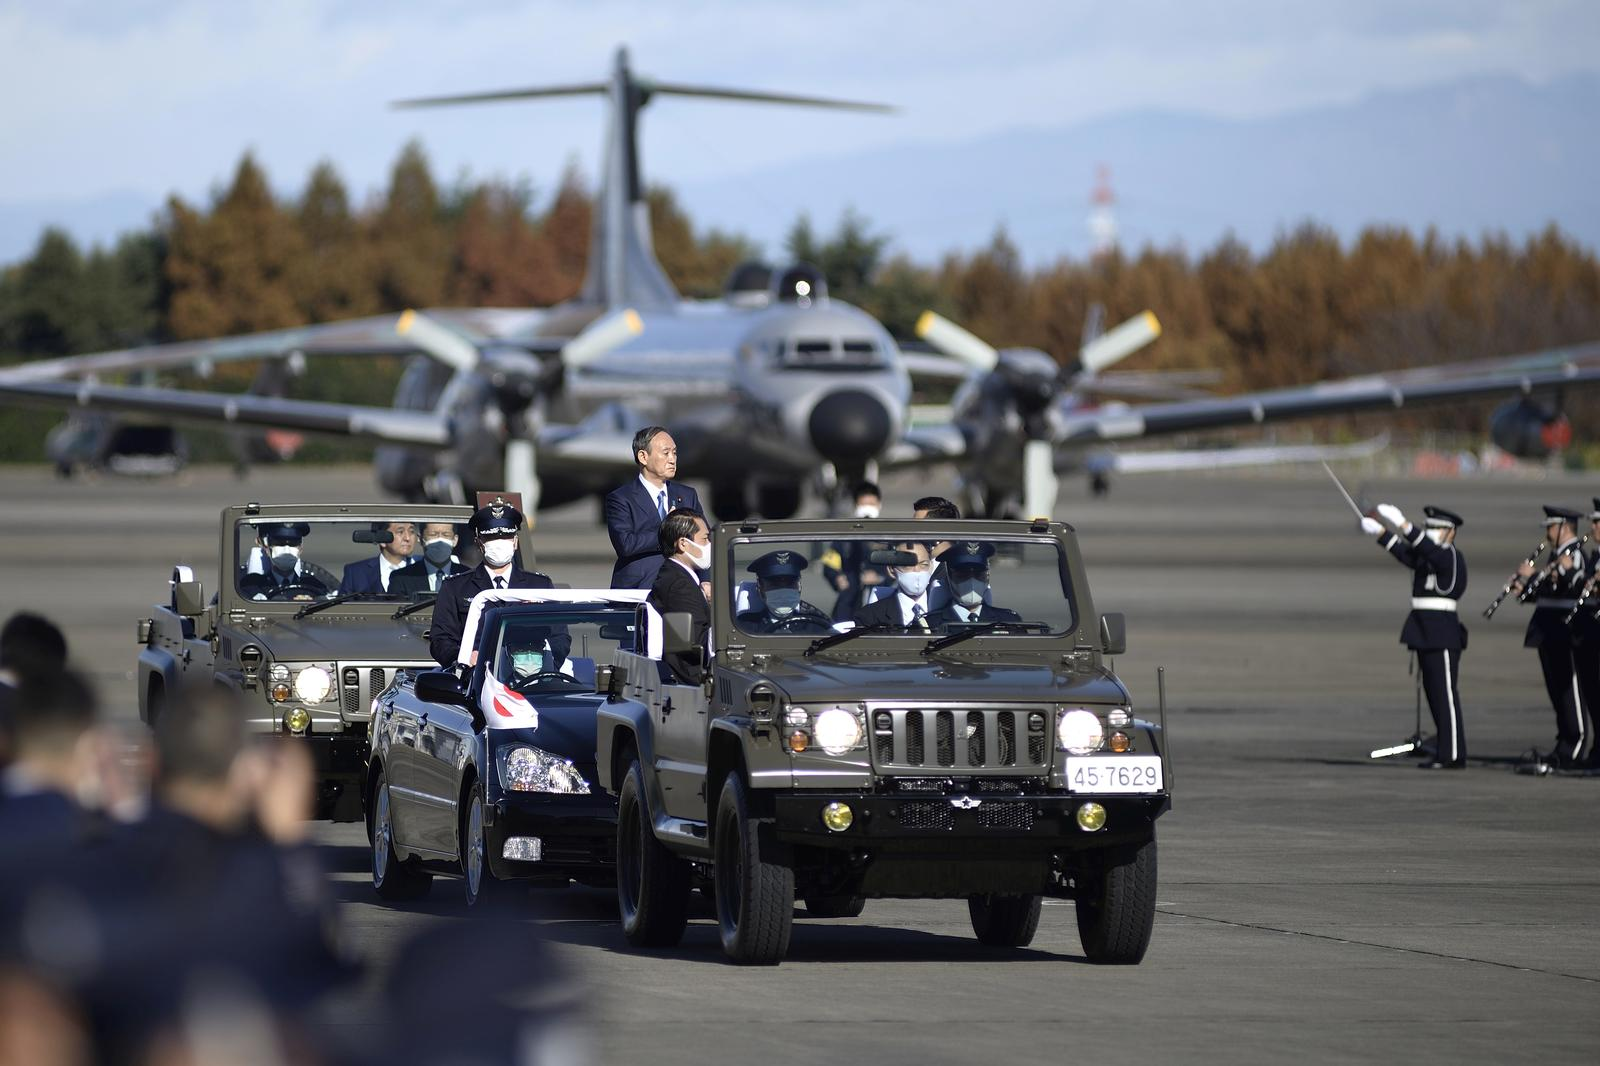 Japan sets record $52 billion military budget with stealth jets, long-range missiles